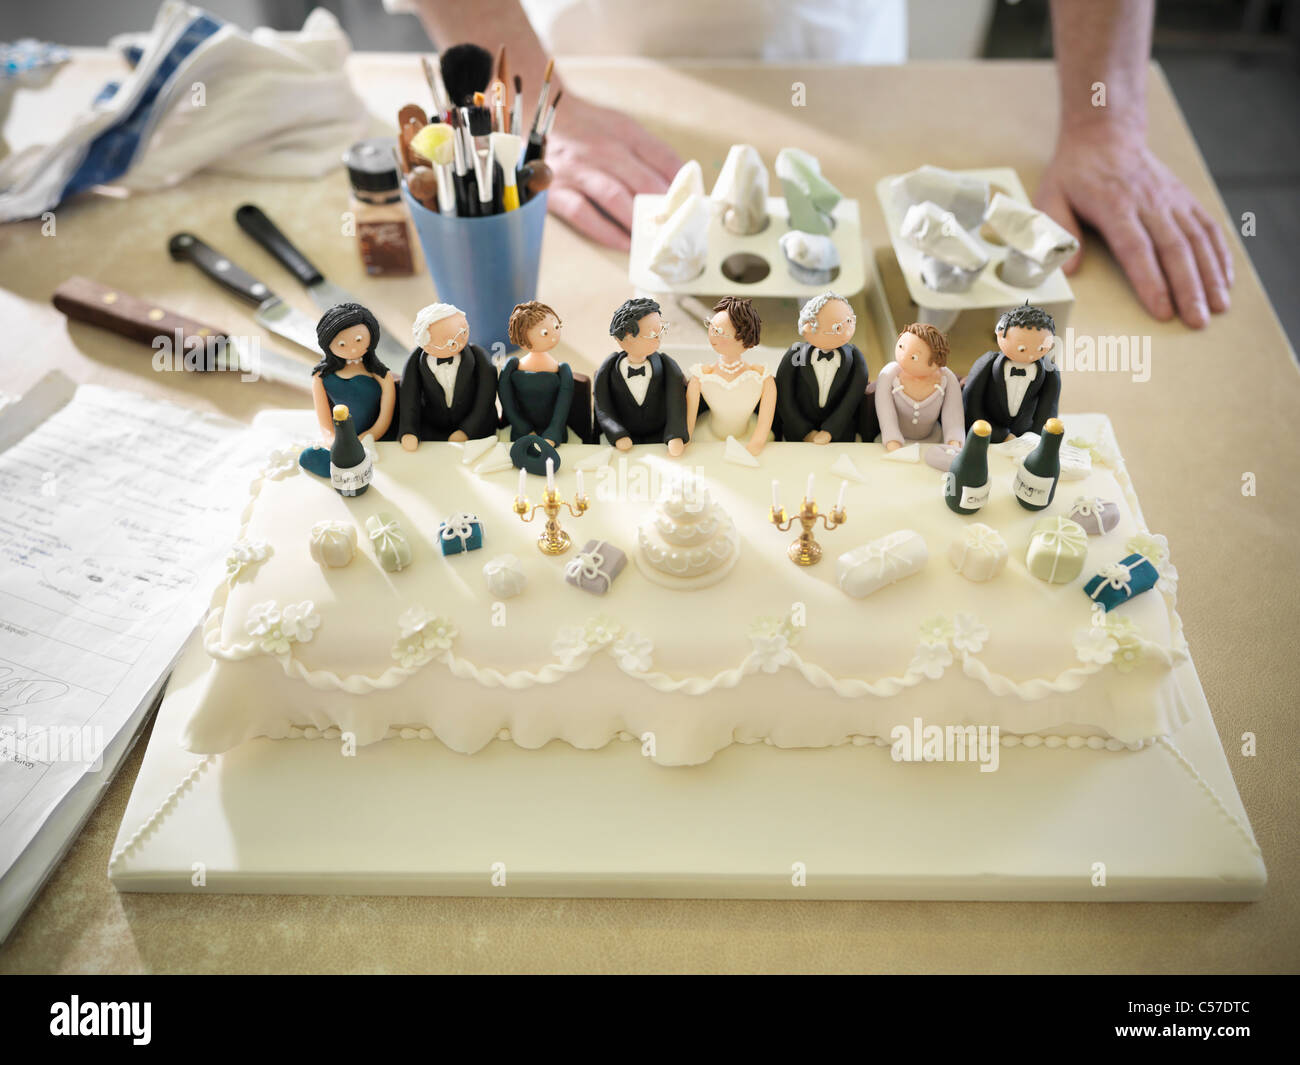 Wedding cake with top table decorations - Stock Image